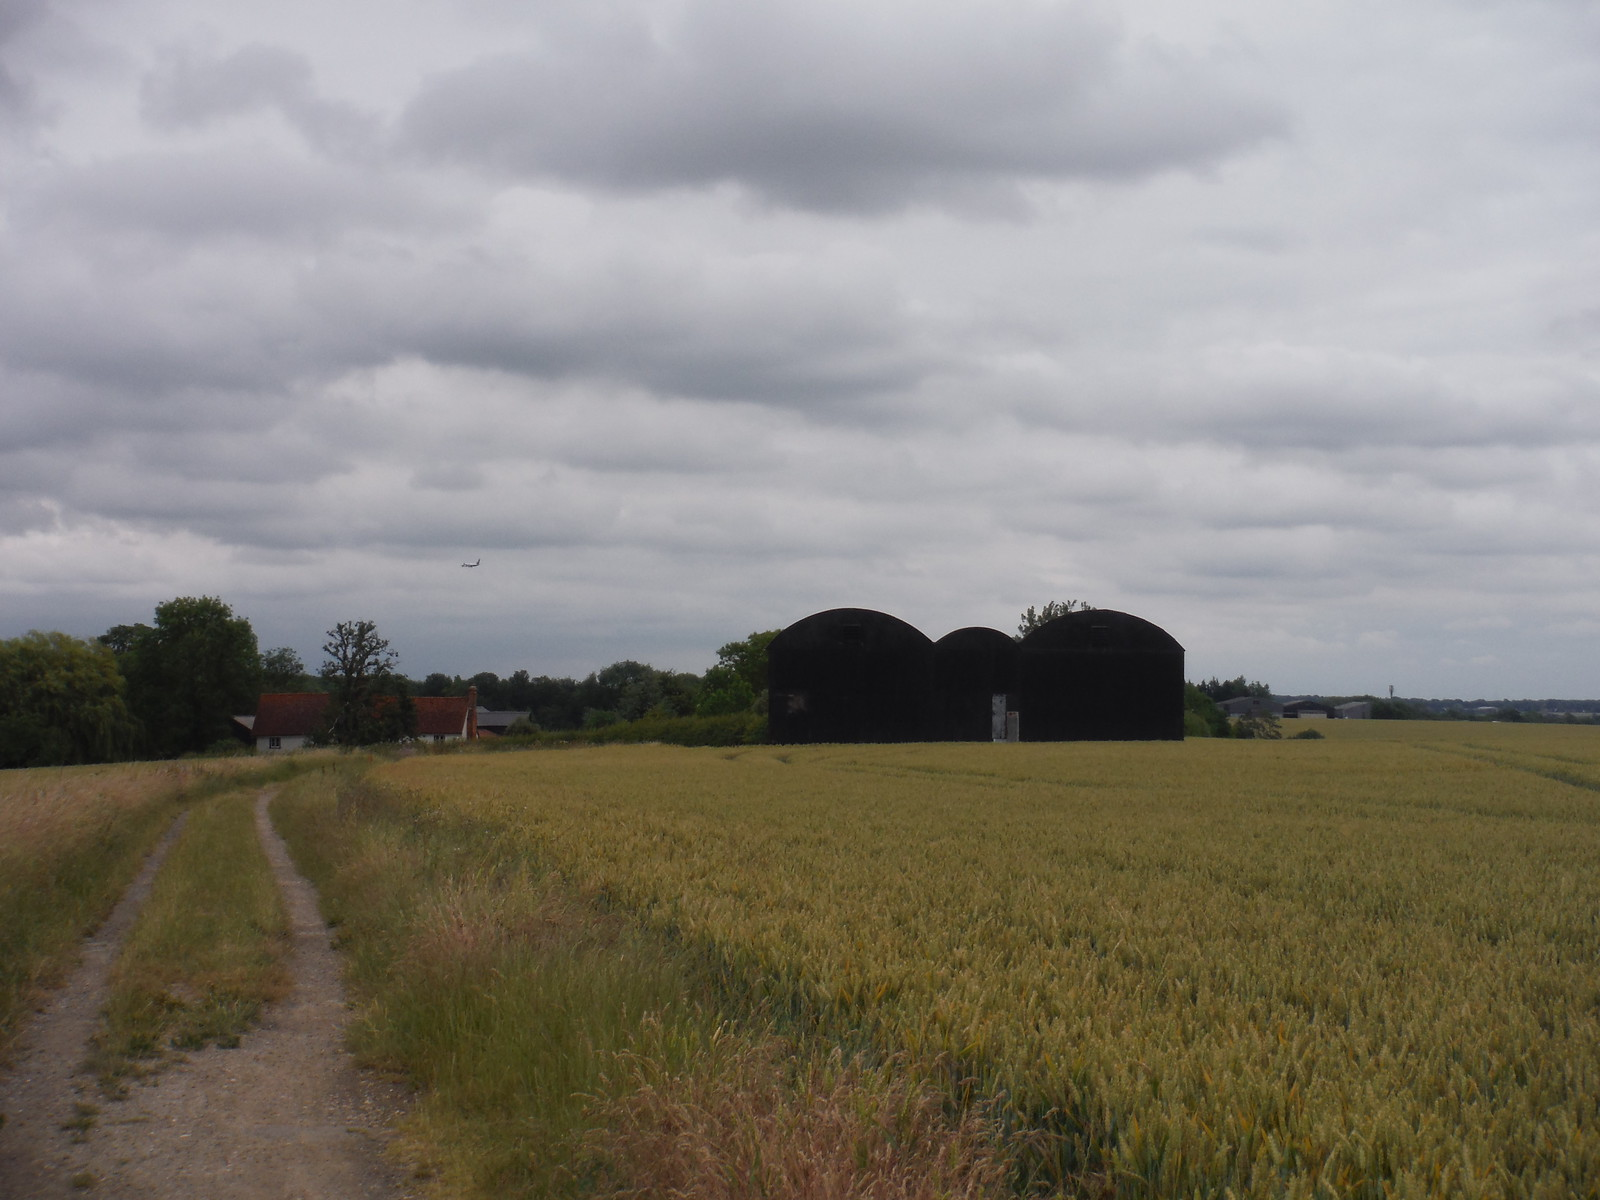 Big Fields means Big Barns, Moor Hall, Thorley SWC Walk 210 - Sawbridgeworth to Bishop's Stortfort (via Henry Moore Foundation)